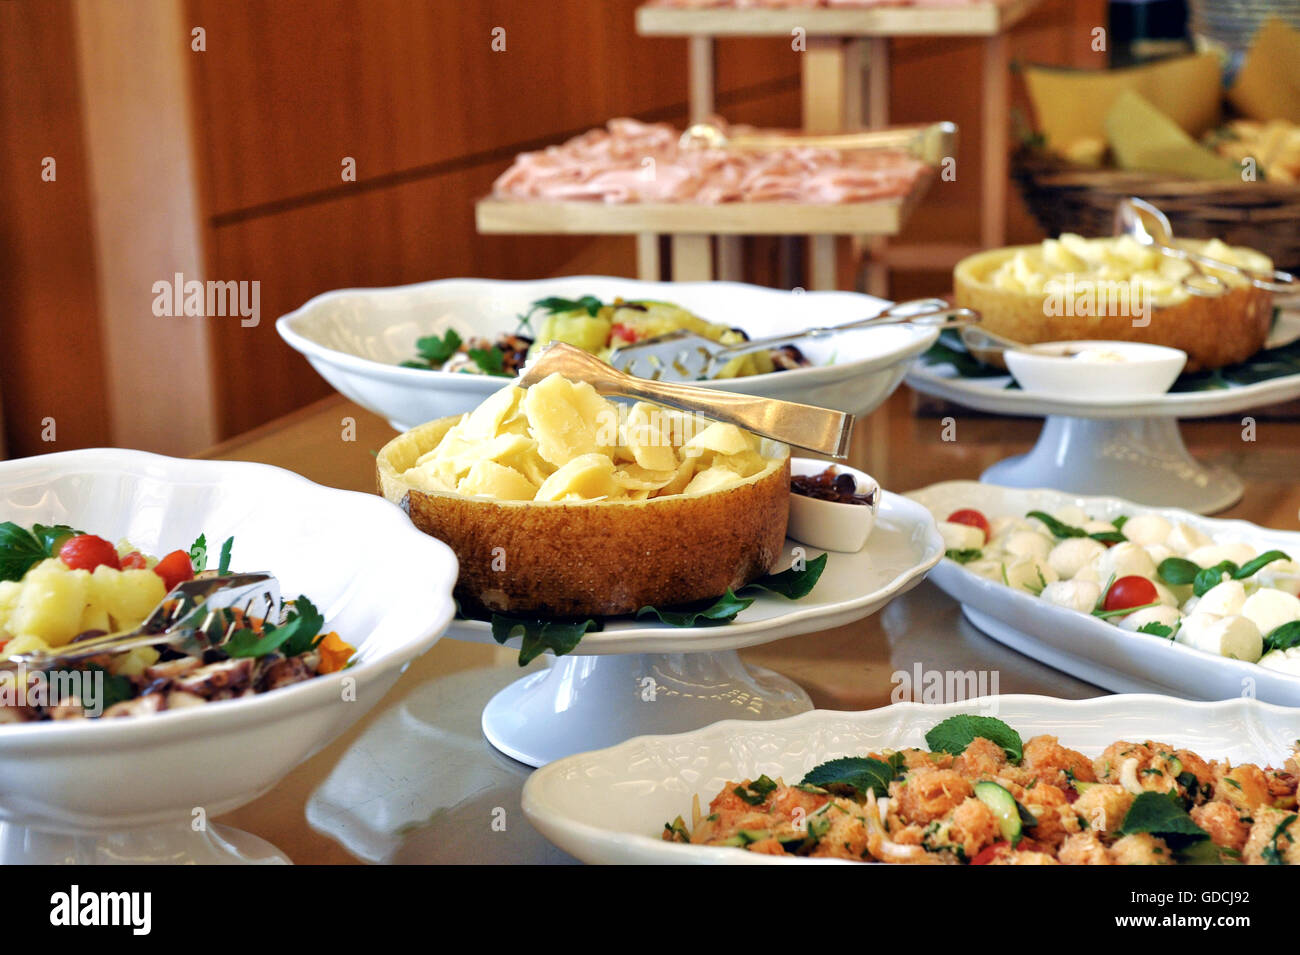 Selection of sliced cold meat, fish and side dishes on a buffet table at a catered event viewed close up - Stock Image